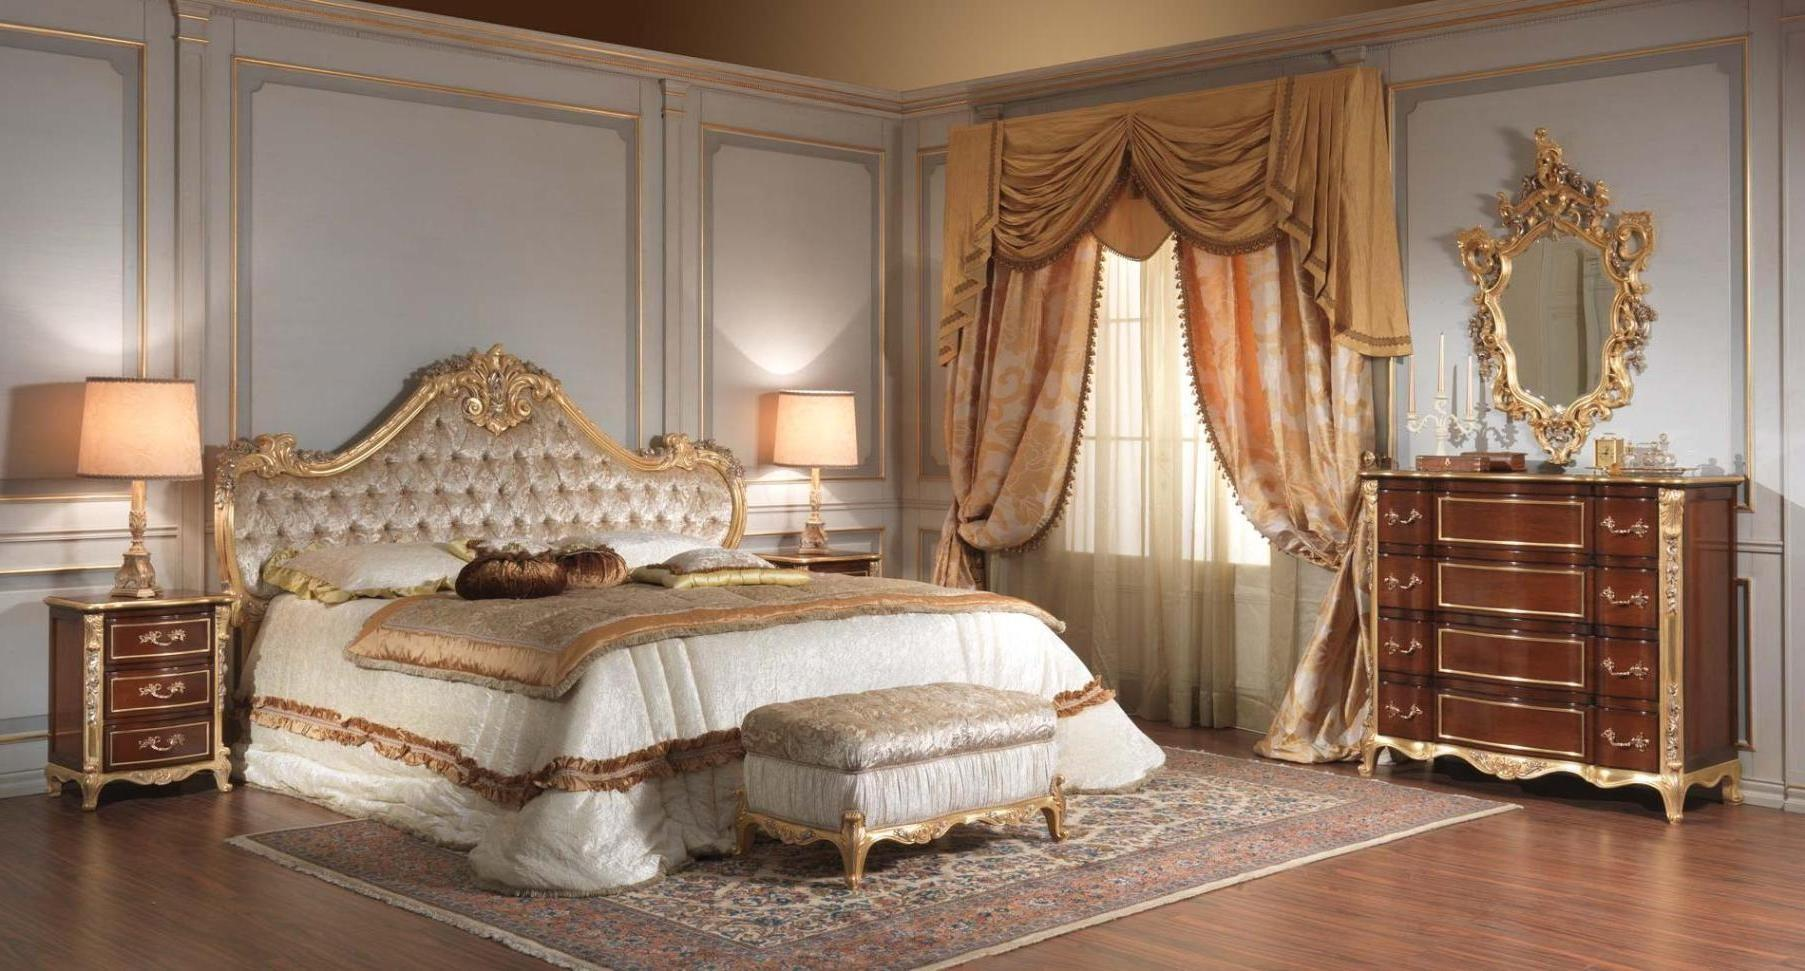 Victorian Style Bedroom Dgmagnets